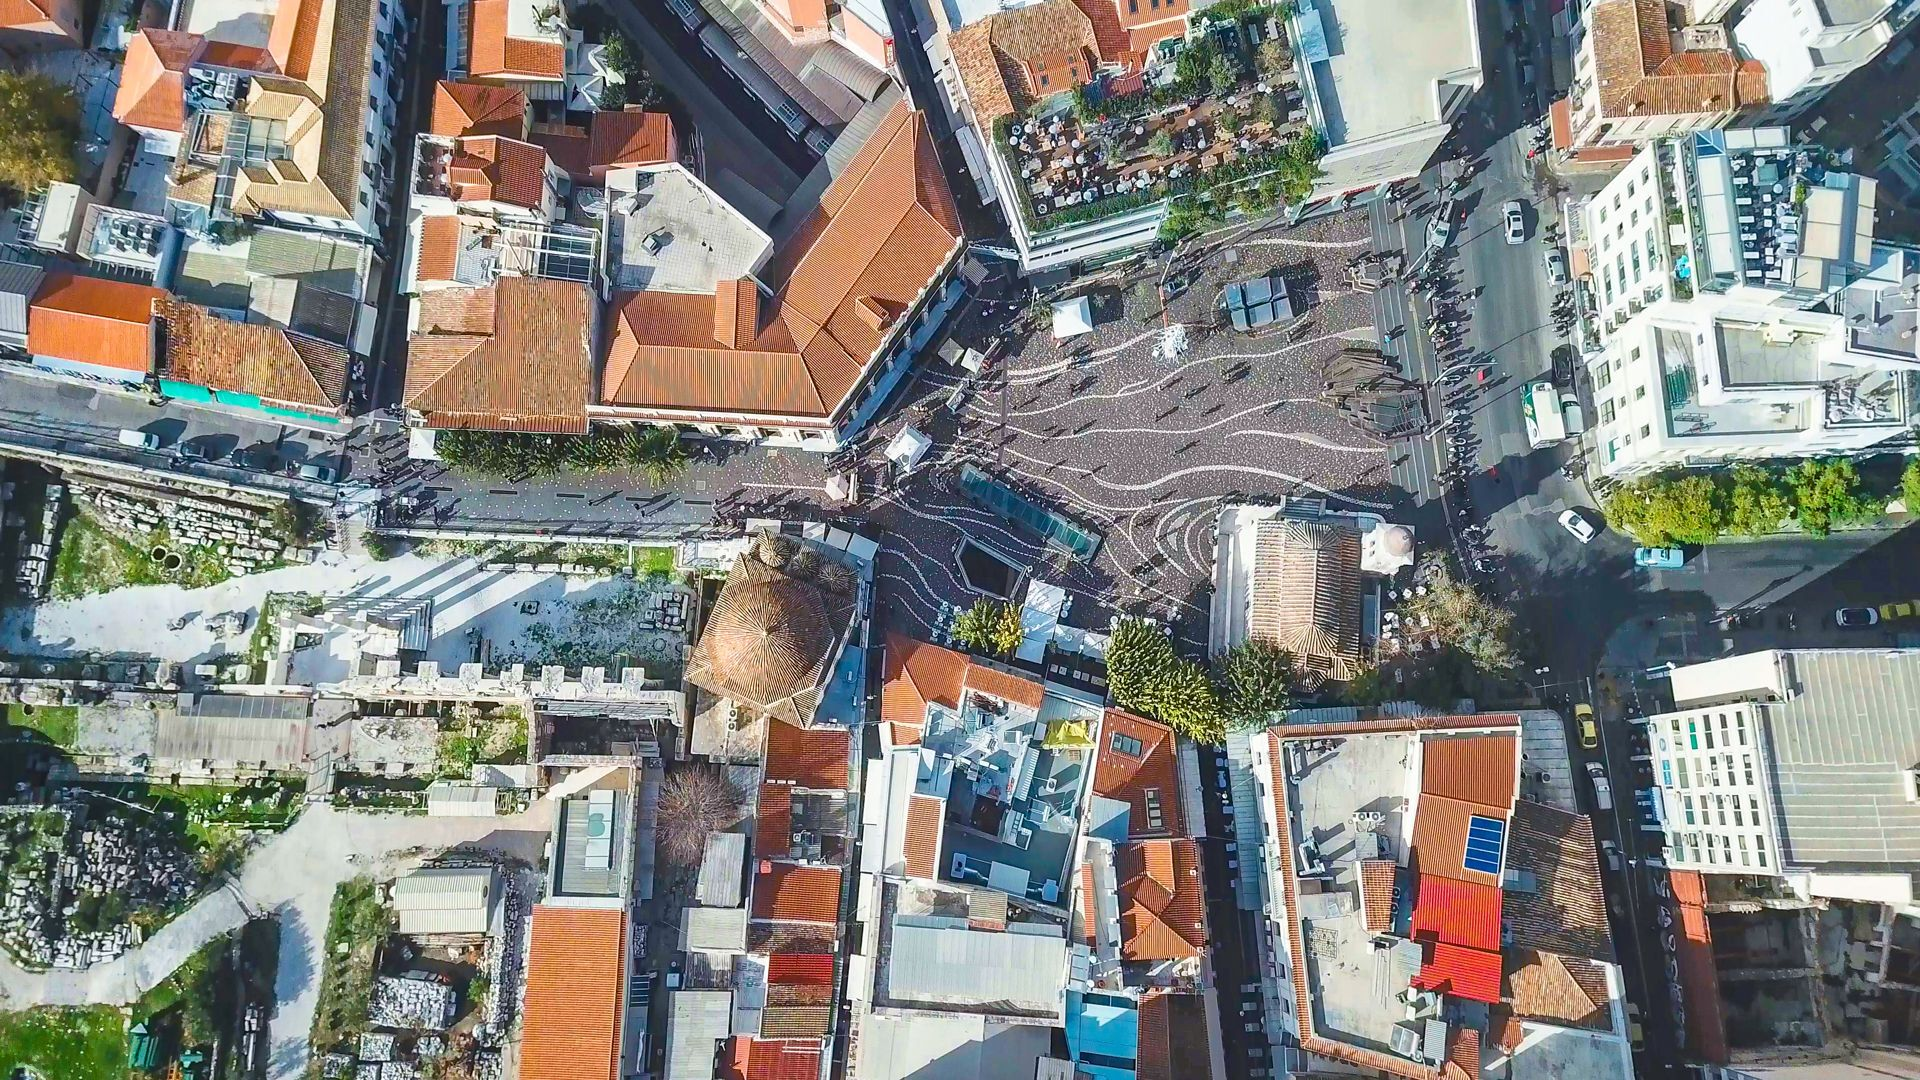 Monastiraki square from above